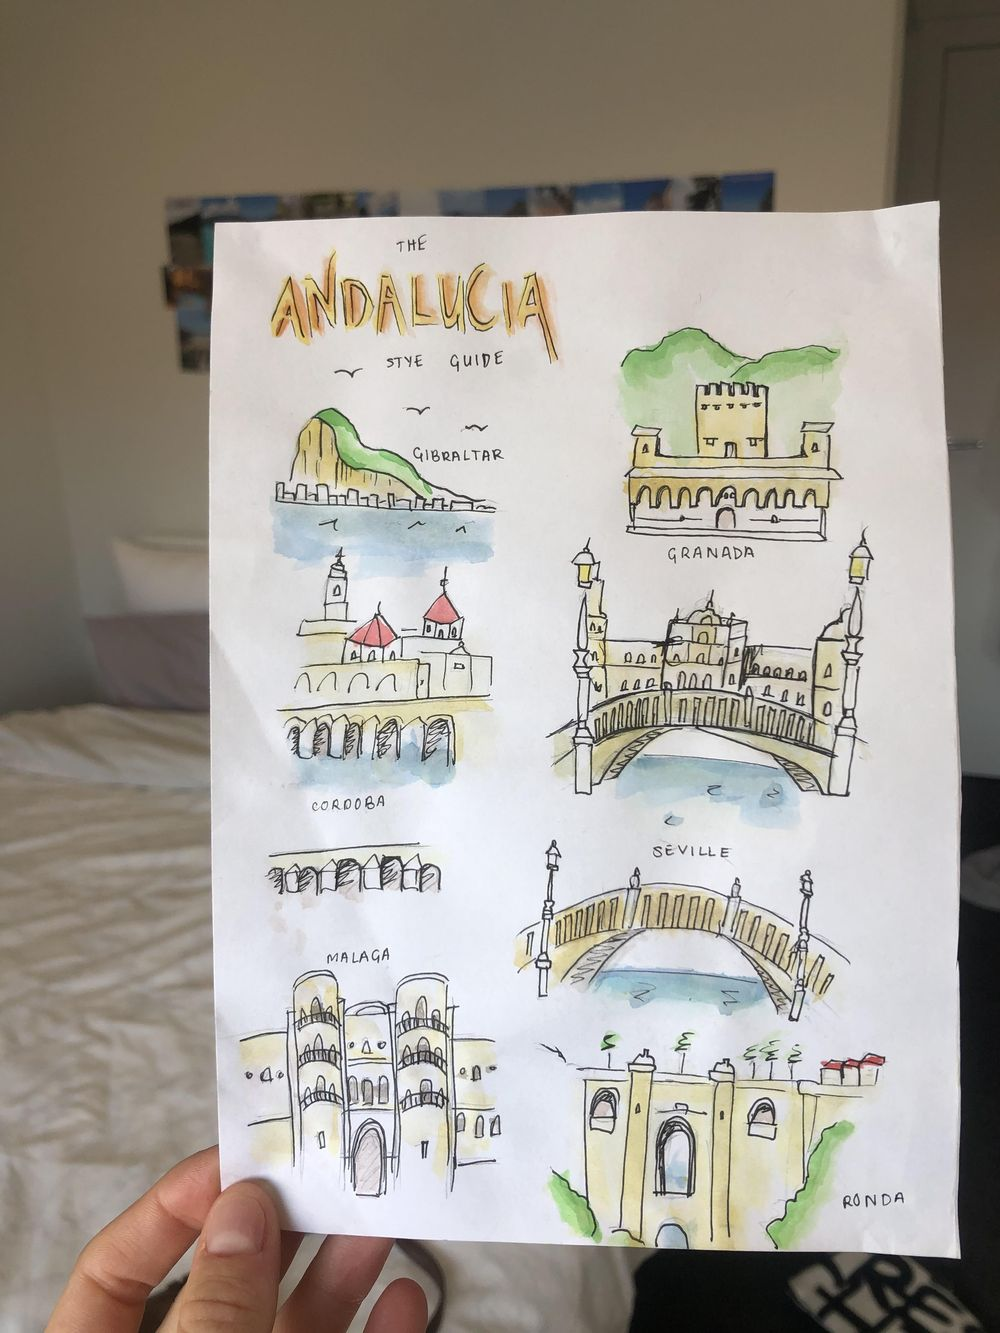 My Andalucia Style guide - image 1 - student project